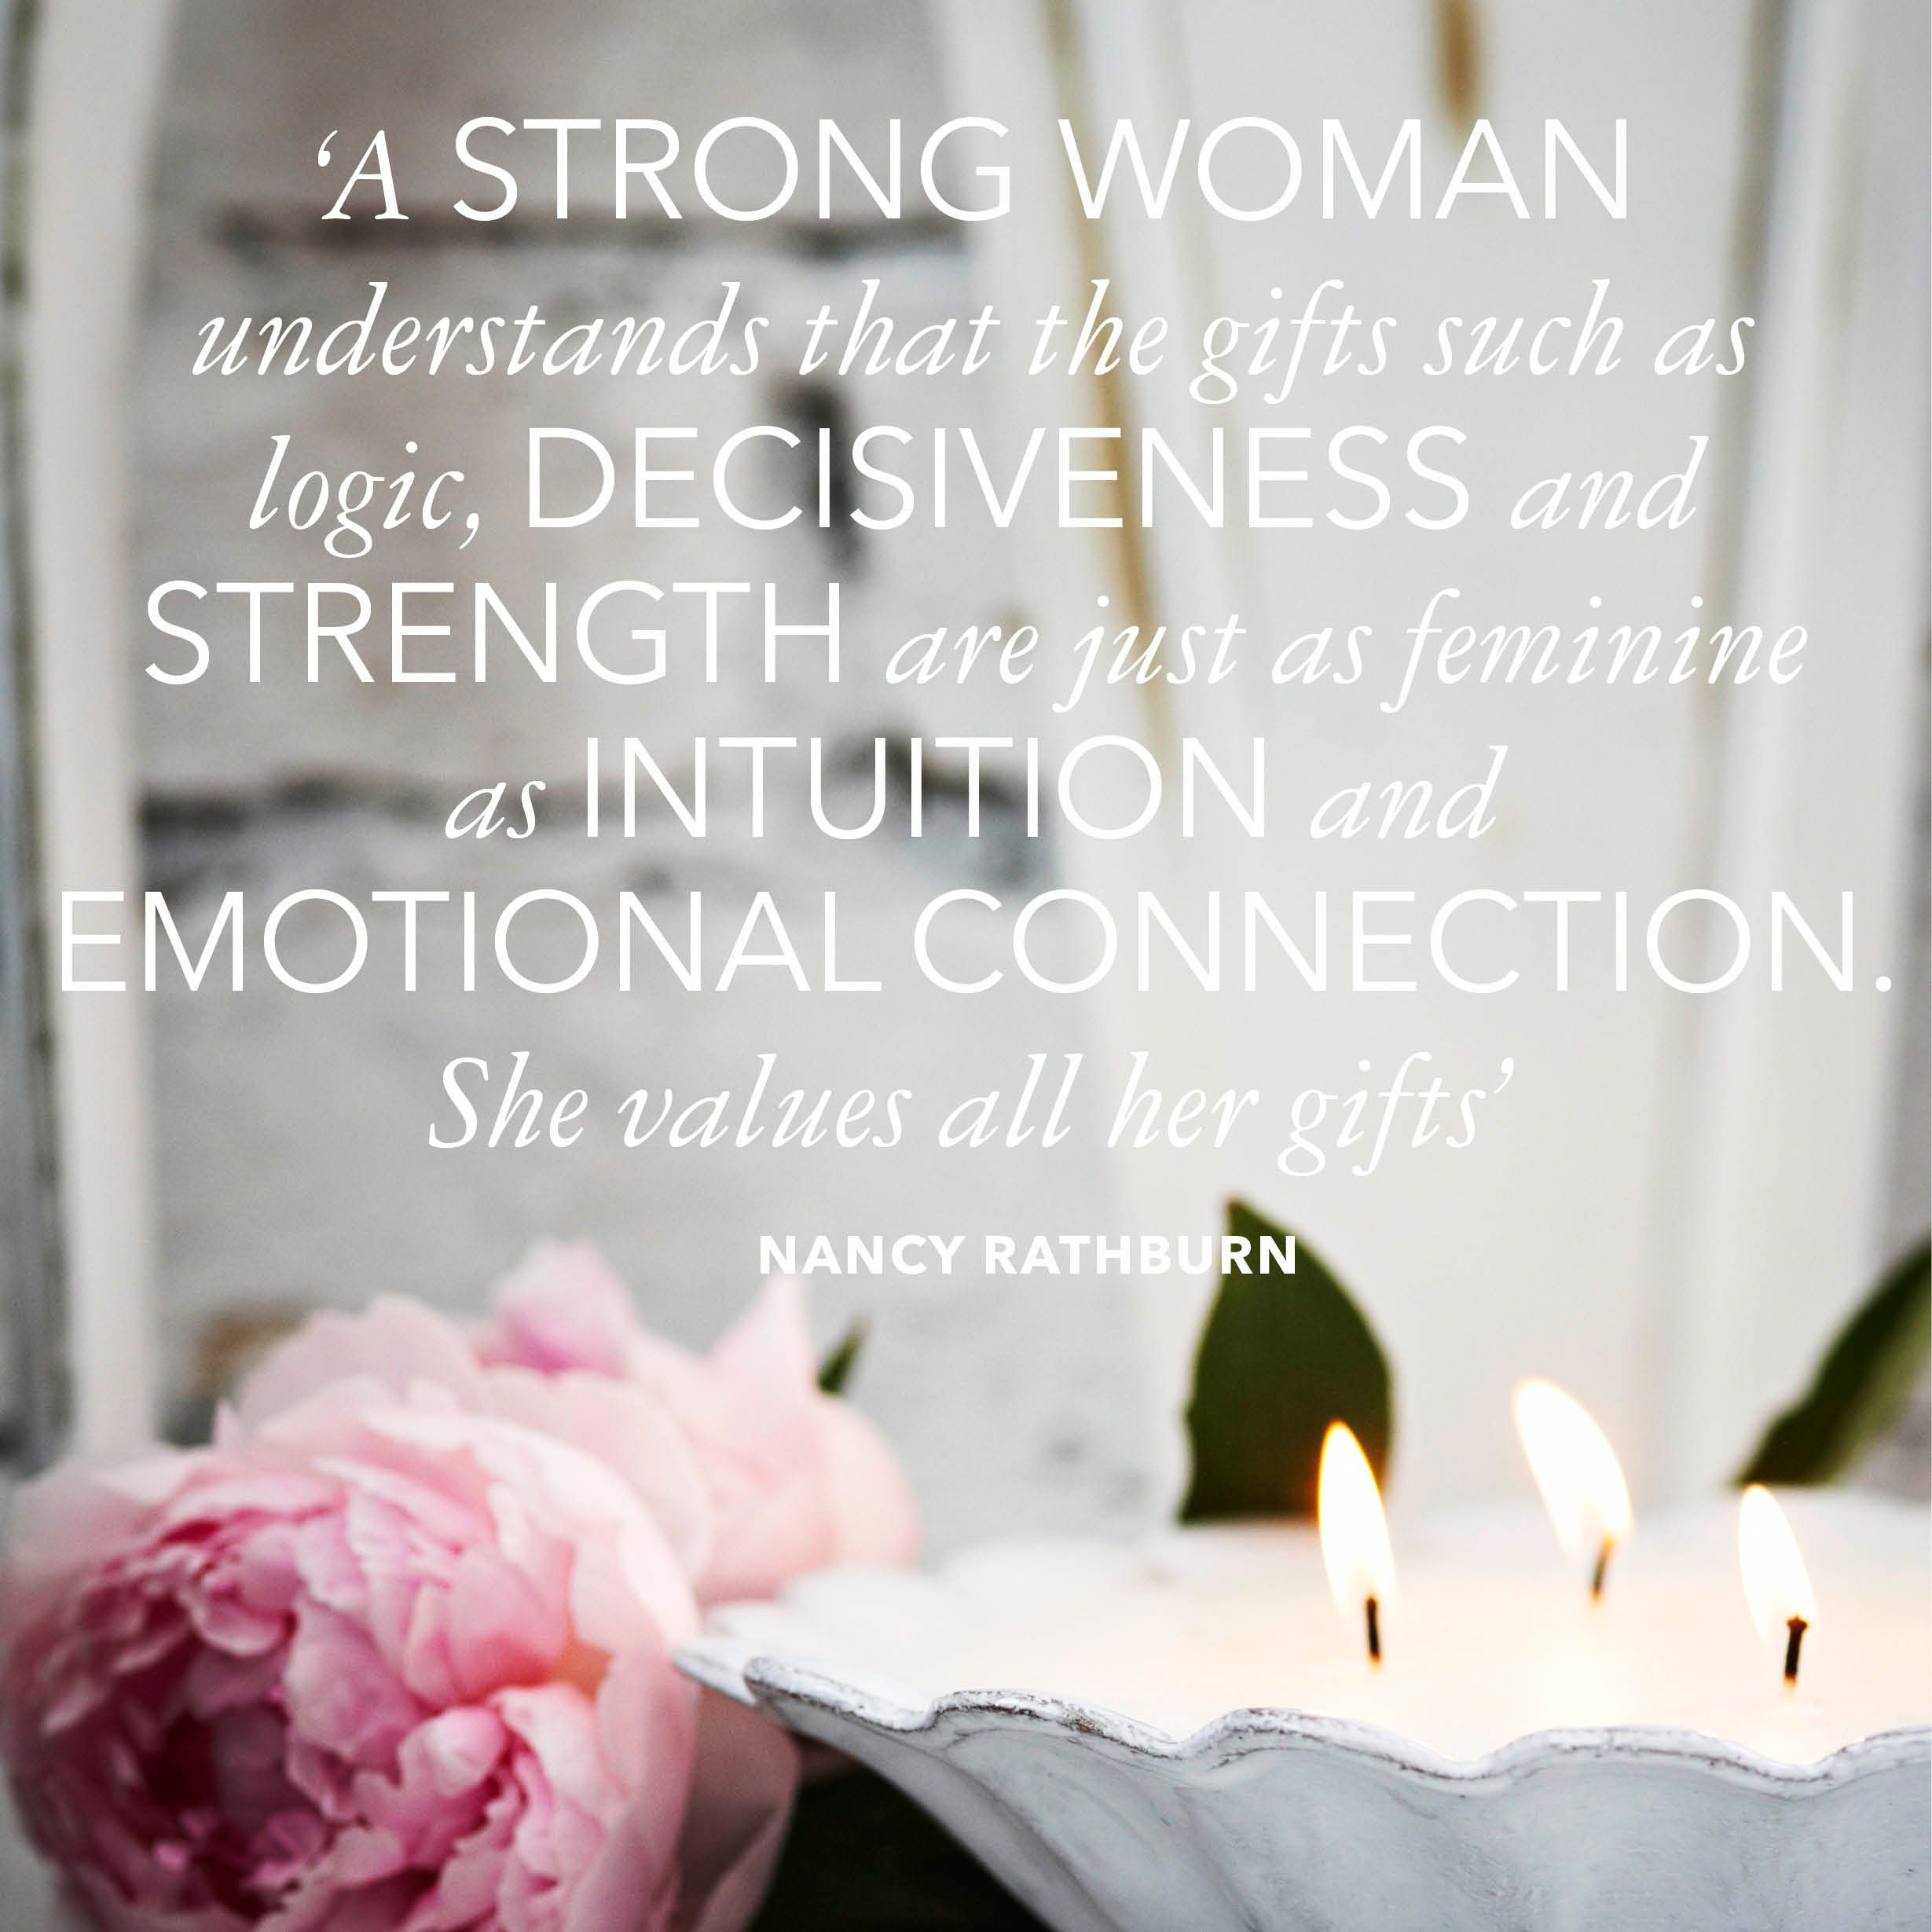 Inspiring quotes for International Women's Day - inspirational